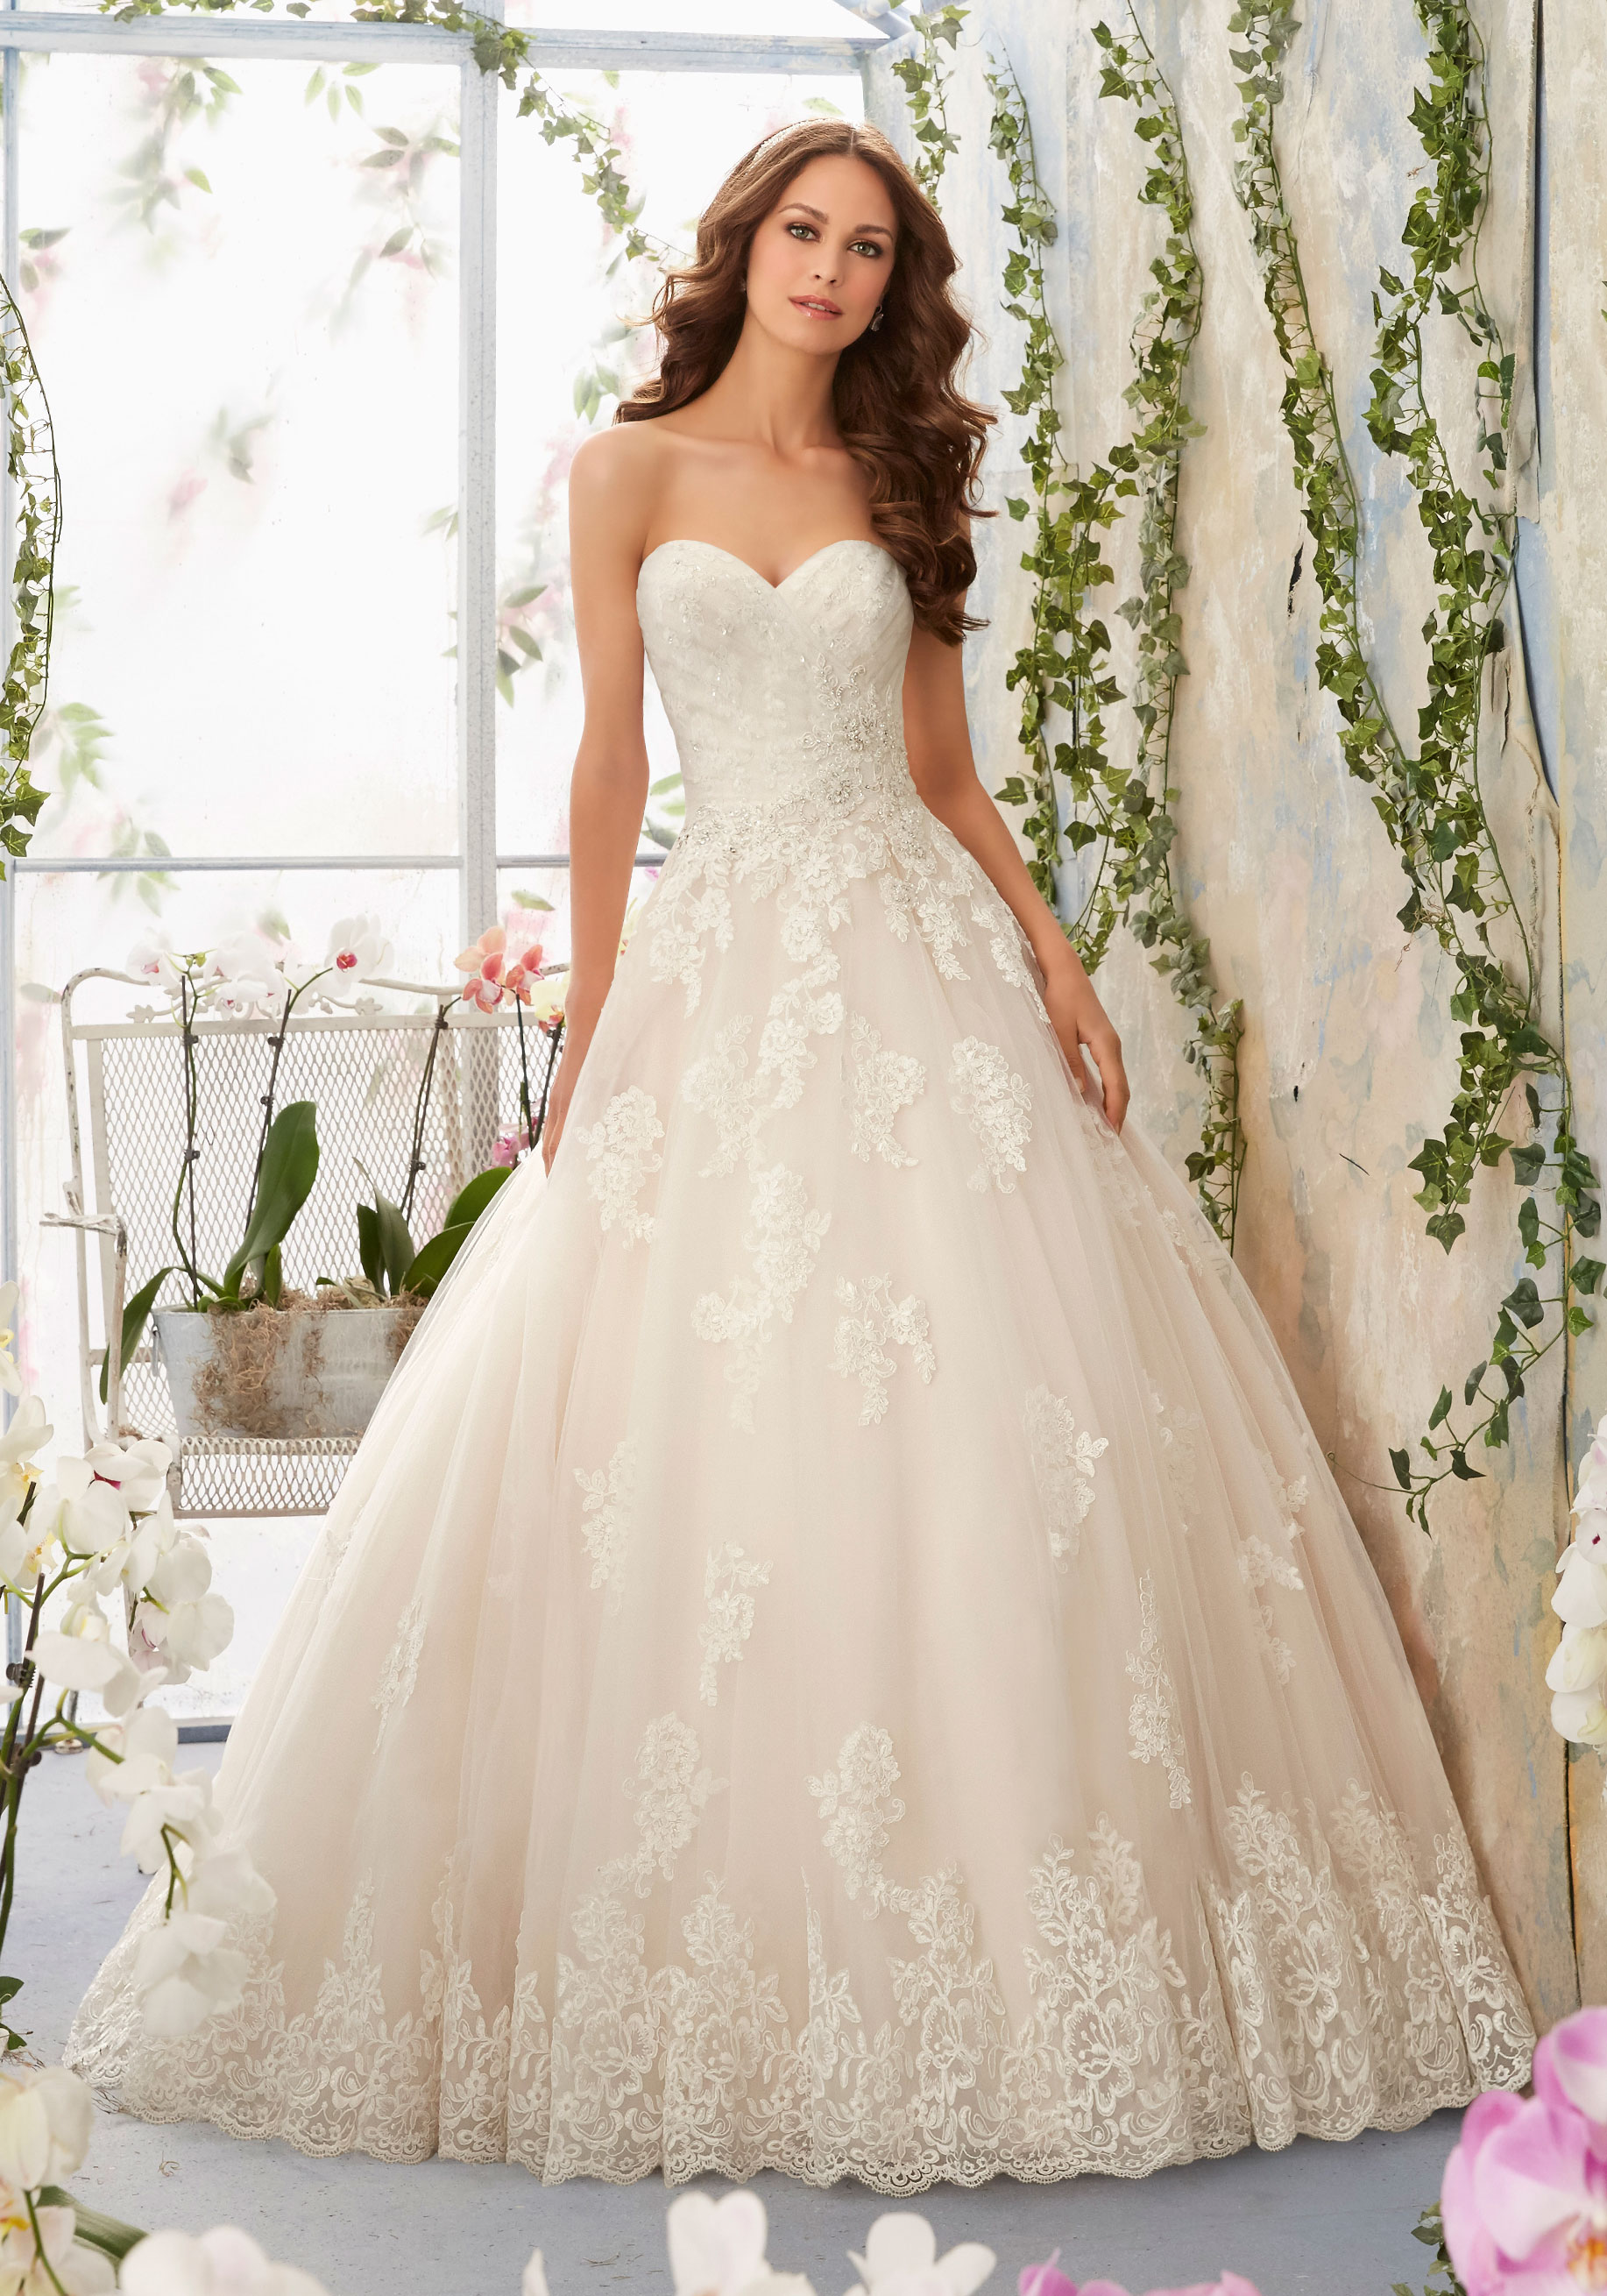 Ballgown / Princess Wedding Dress with a Sweetheart Neckline